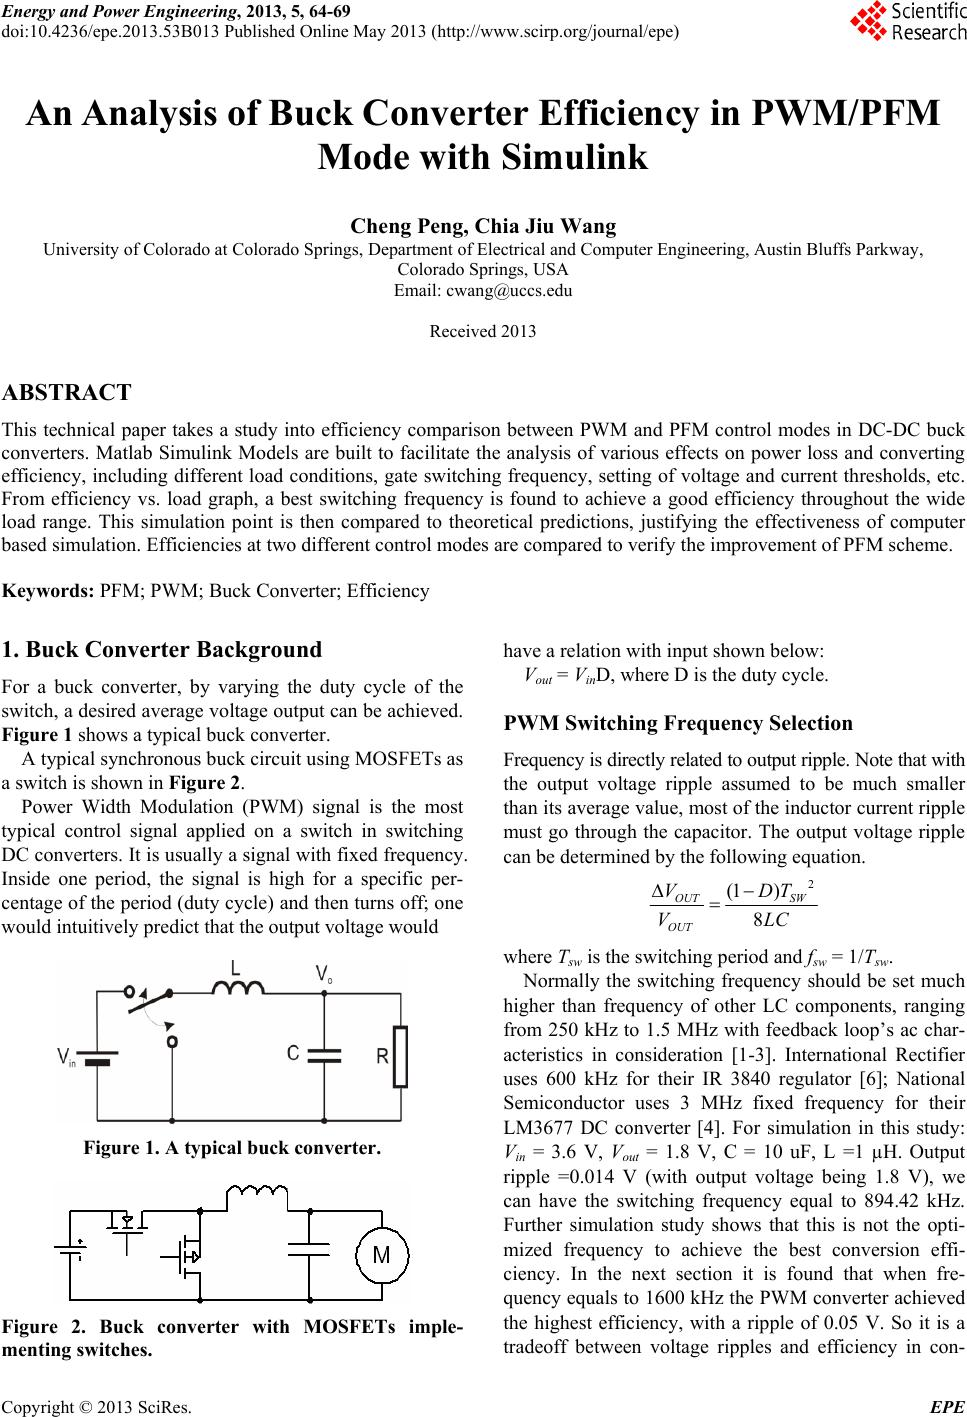 An Analysis of Buck Converter Efficiency in PWM/PFM Mode